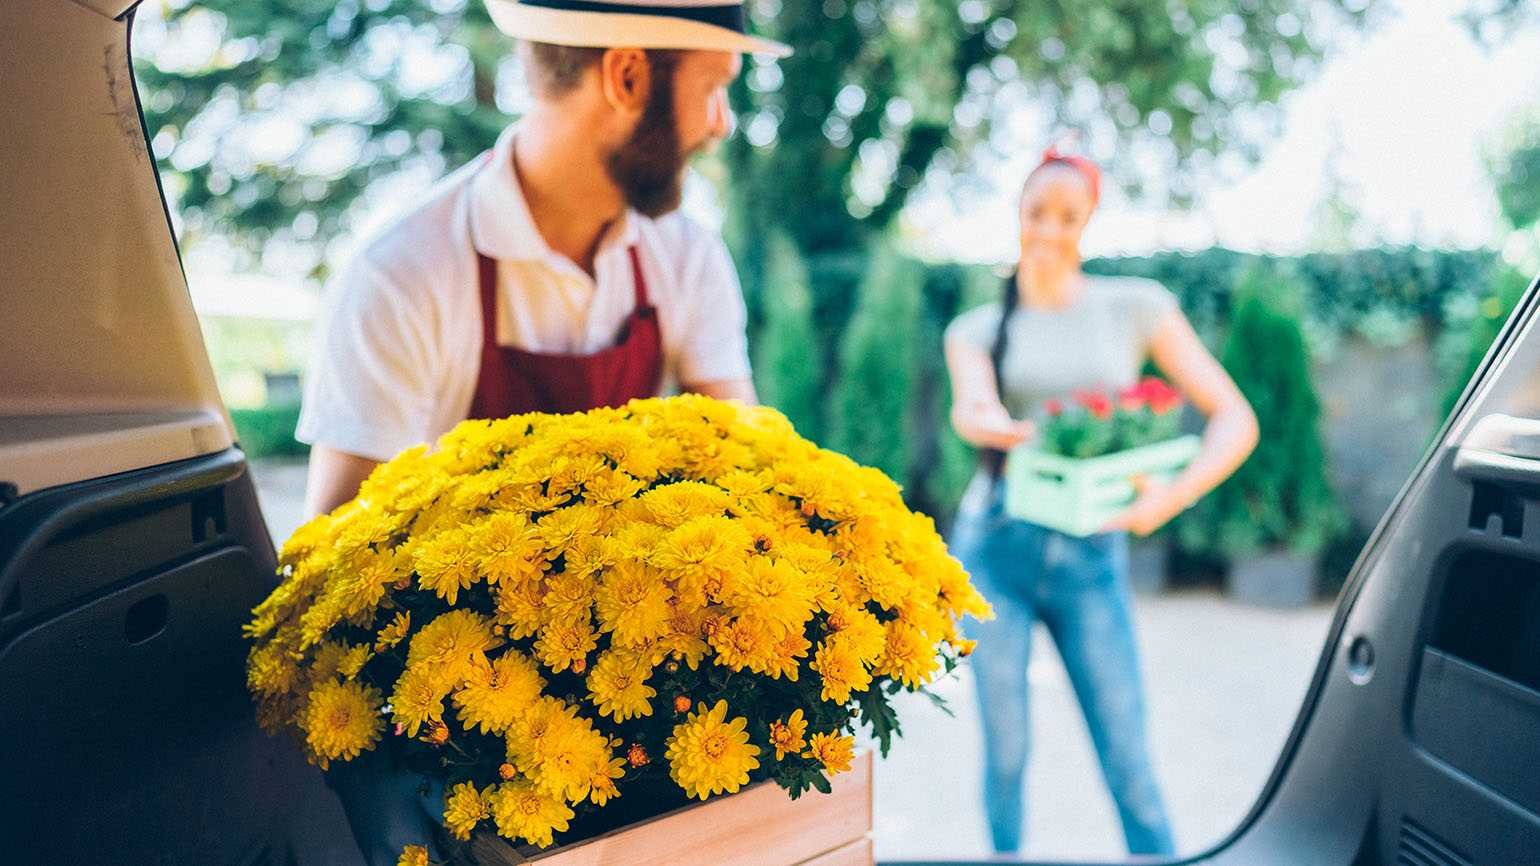 Man delivering flowers to a young woman